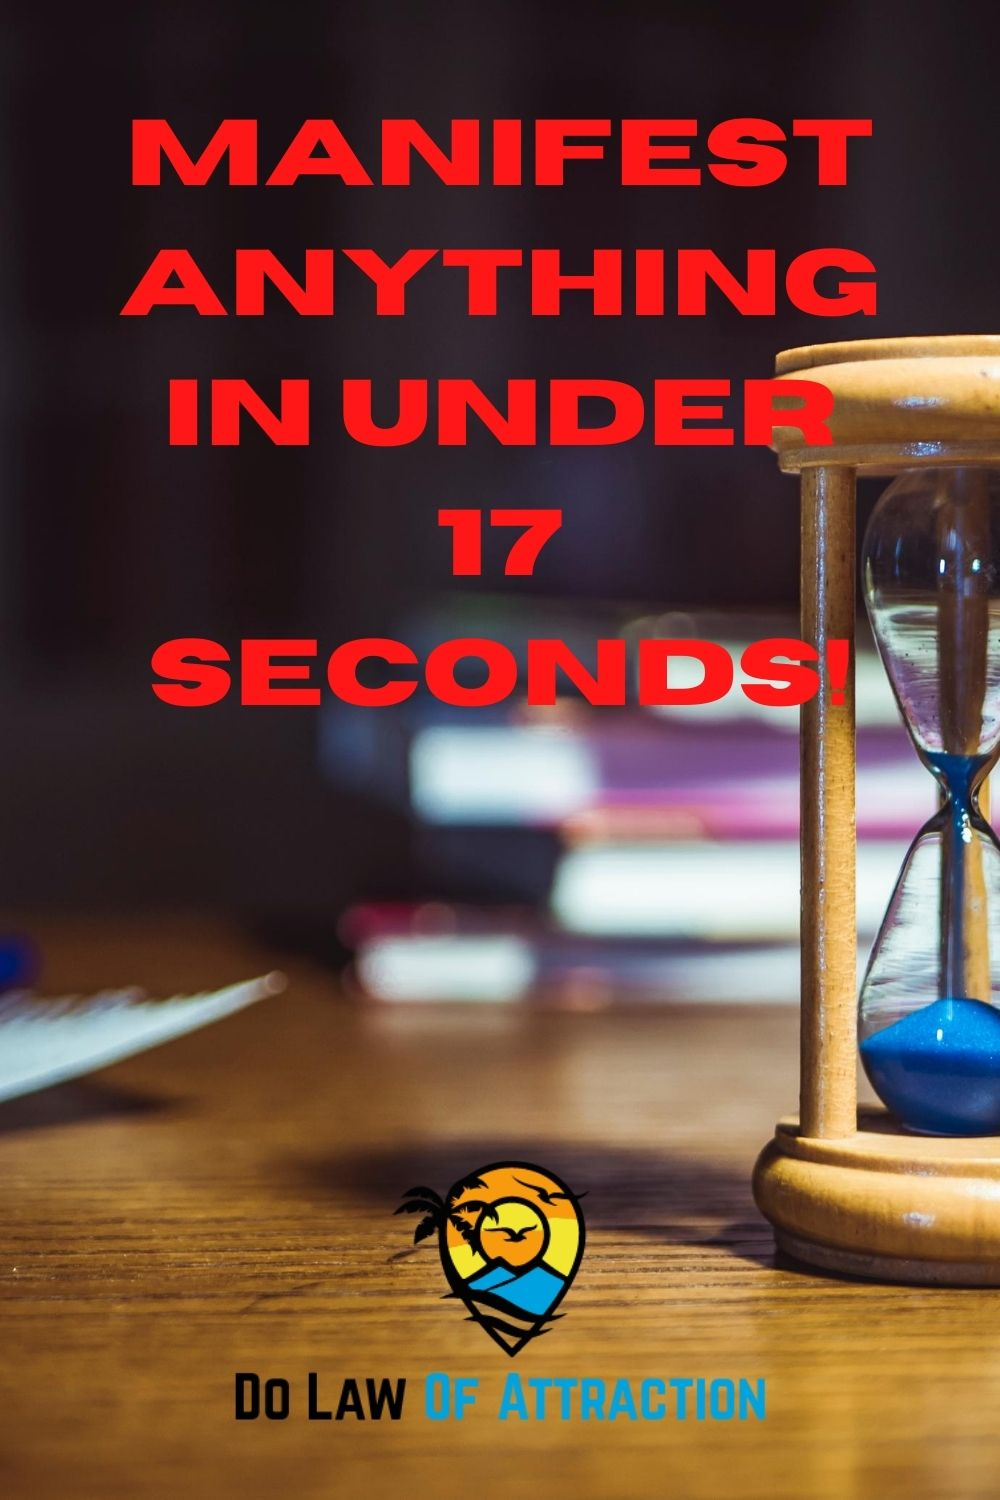 Manifest anything in under 17 seconds!